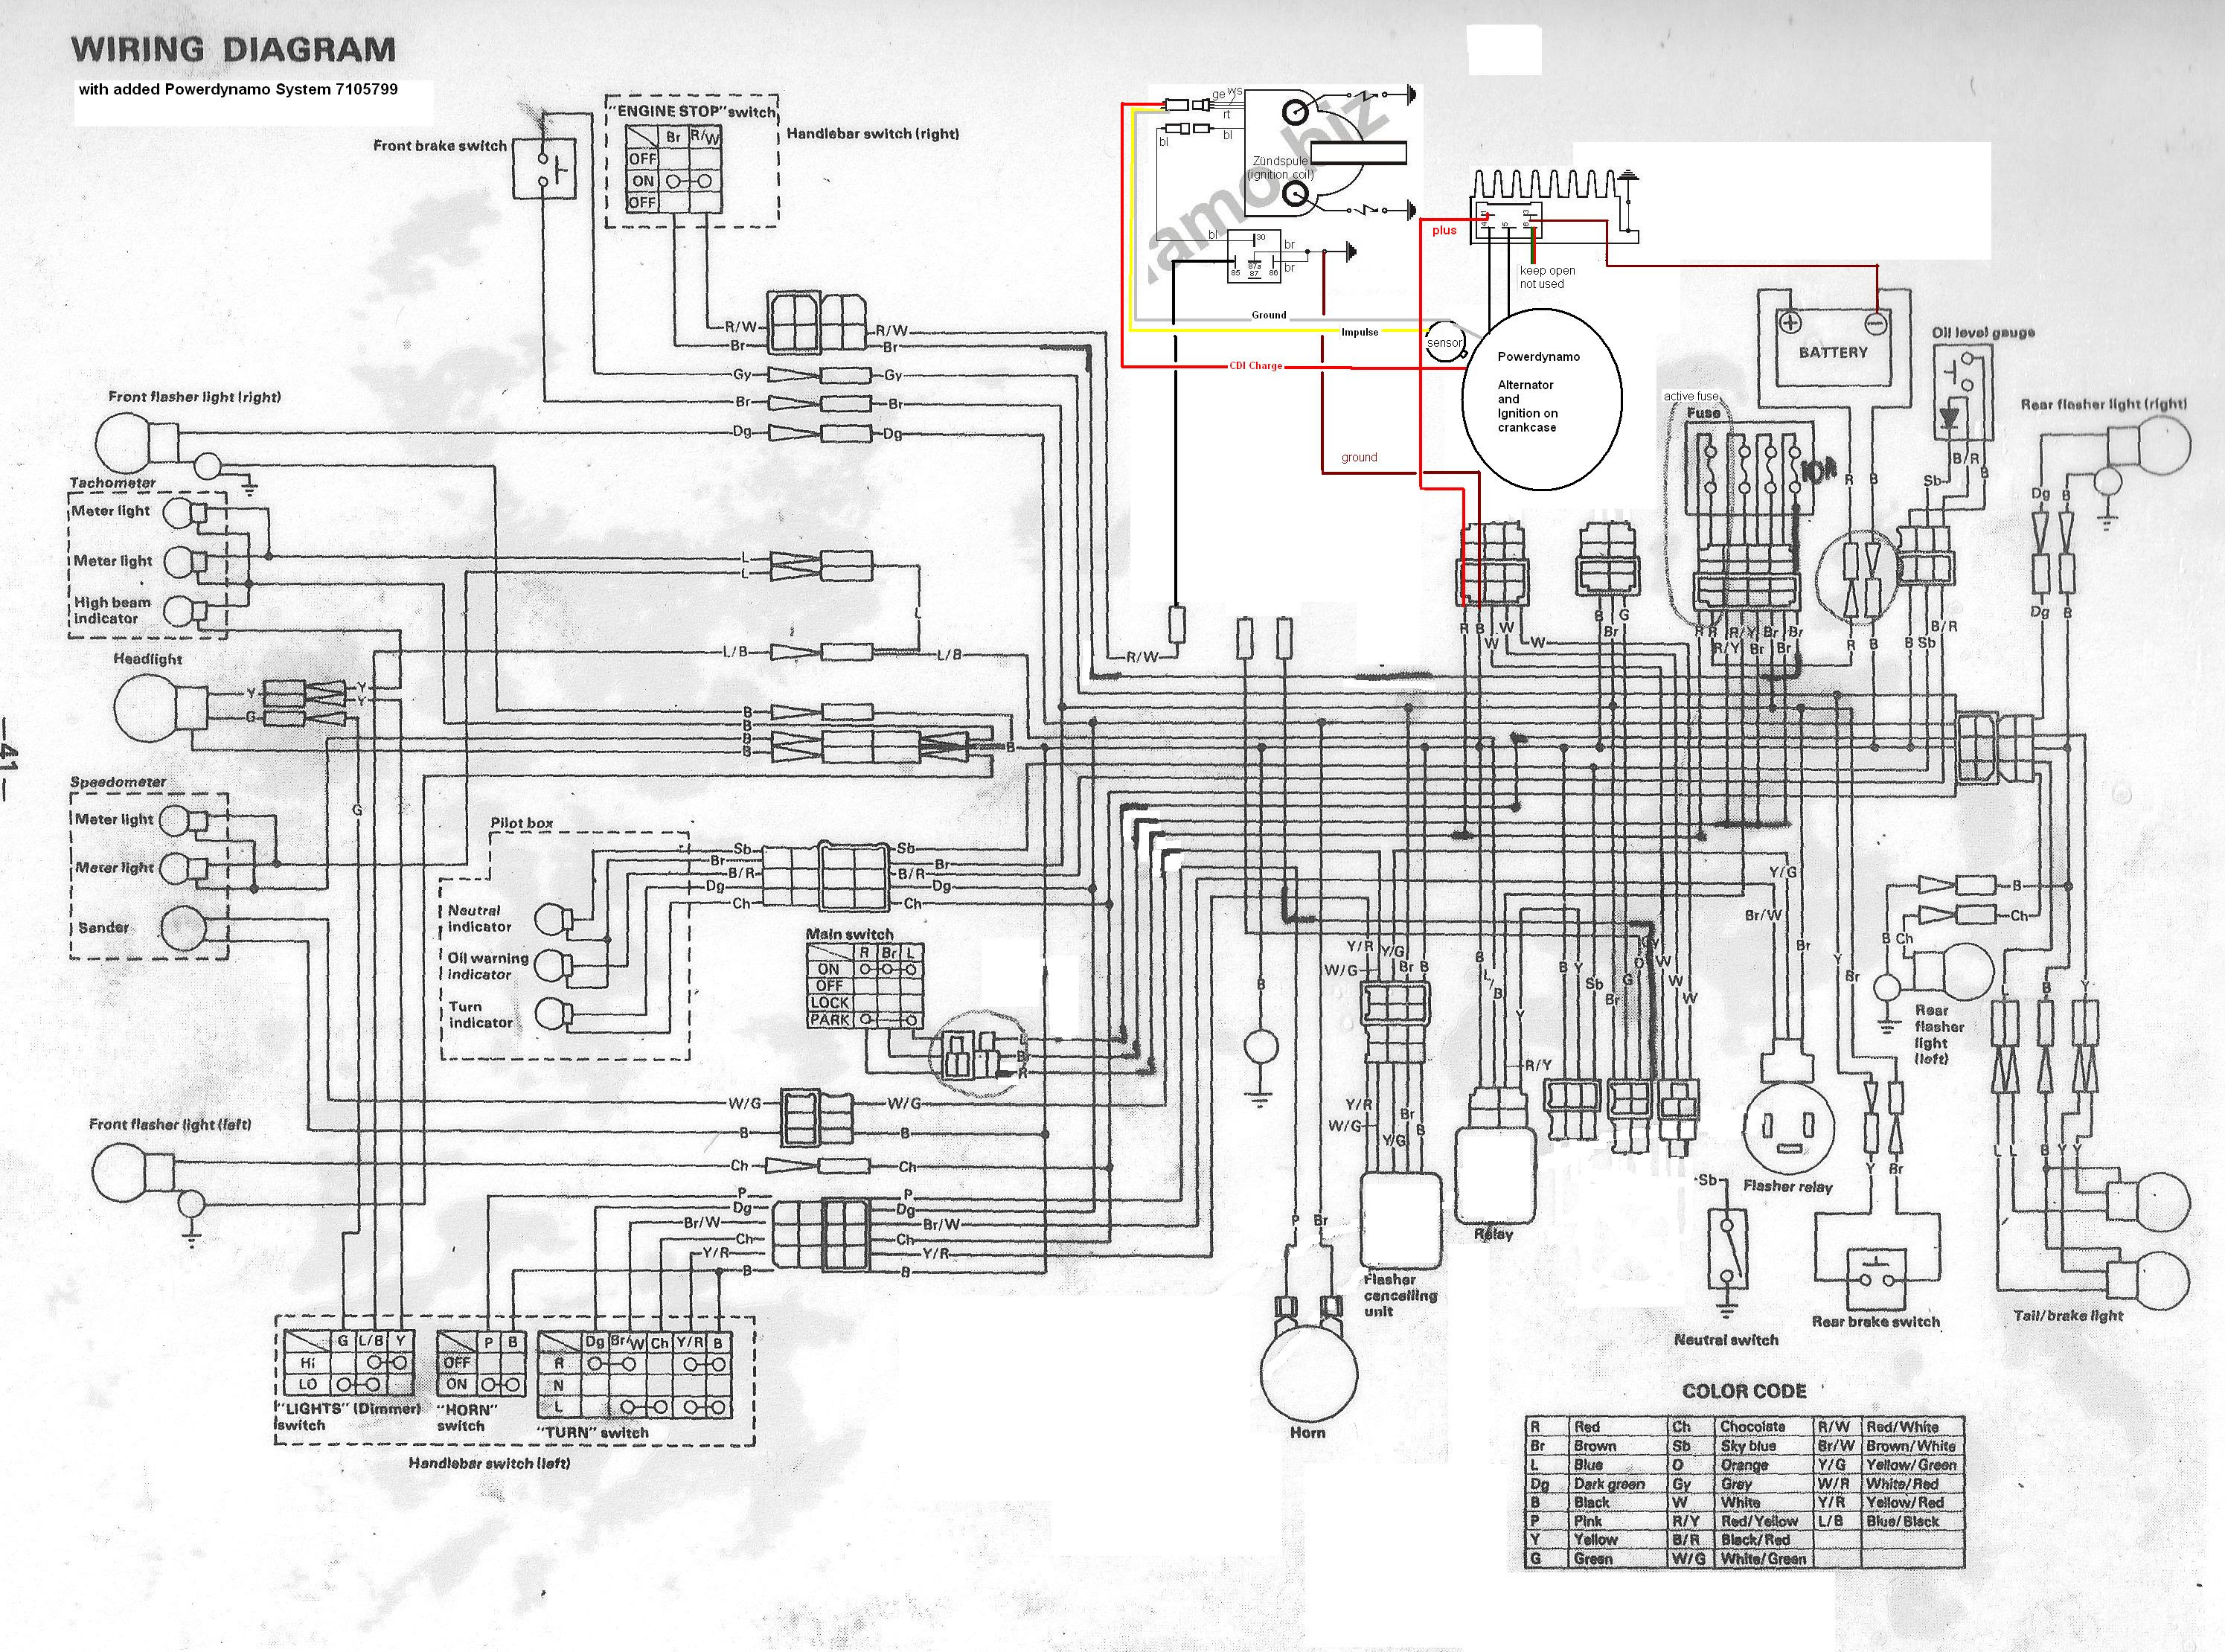 ktm xcf 350 wiring diagrams | athletics-connection wiring diagram number -  athletics-connection.garbobar.it  garbo bar